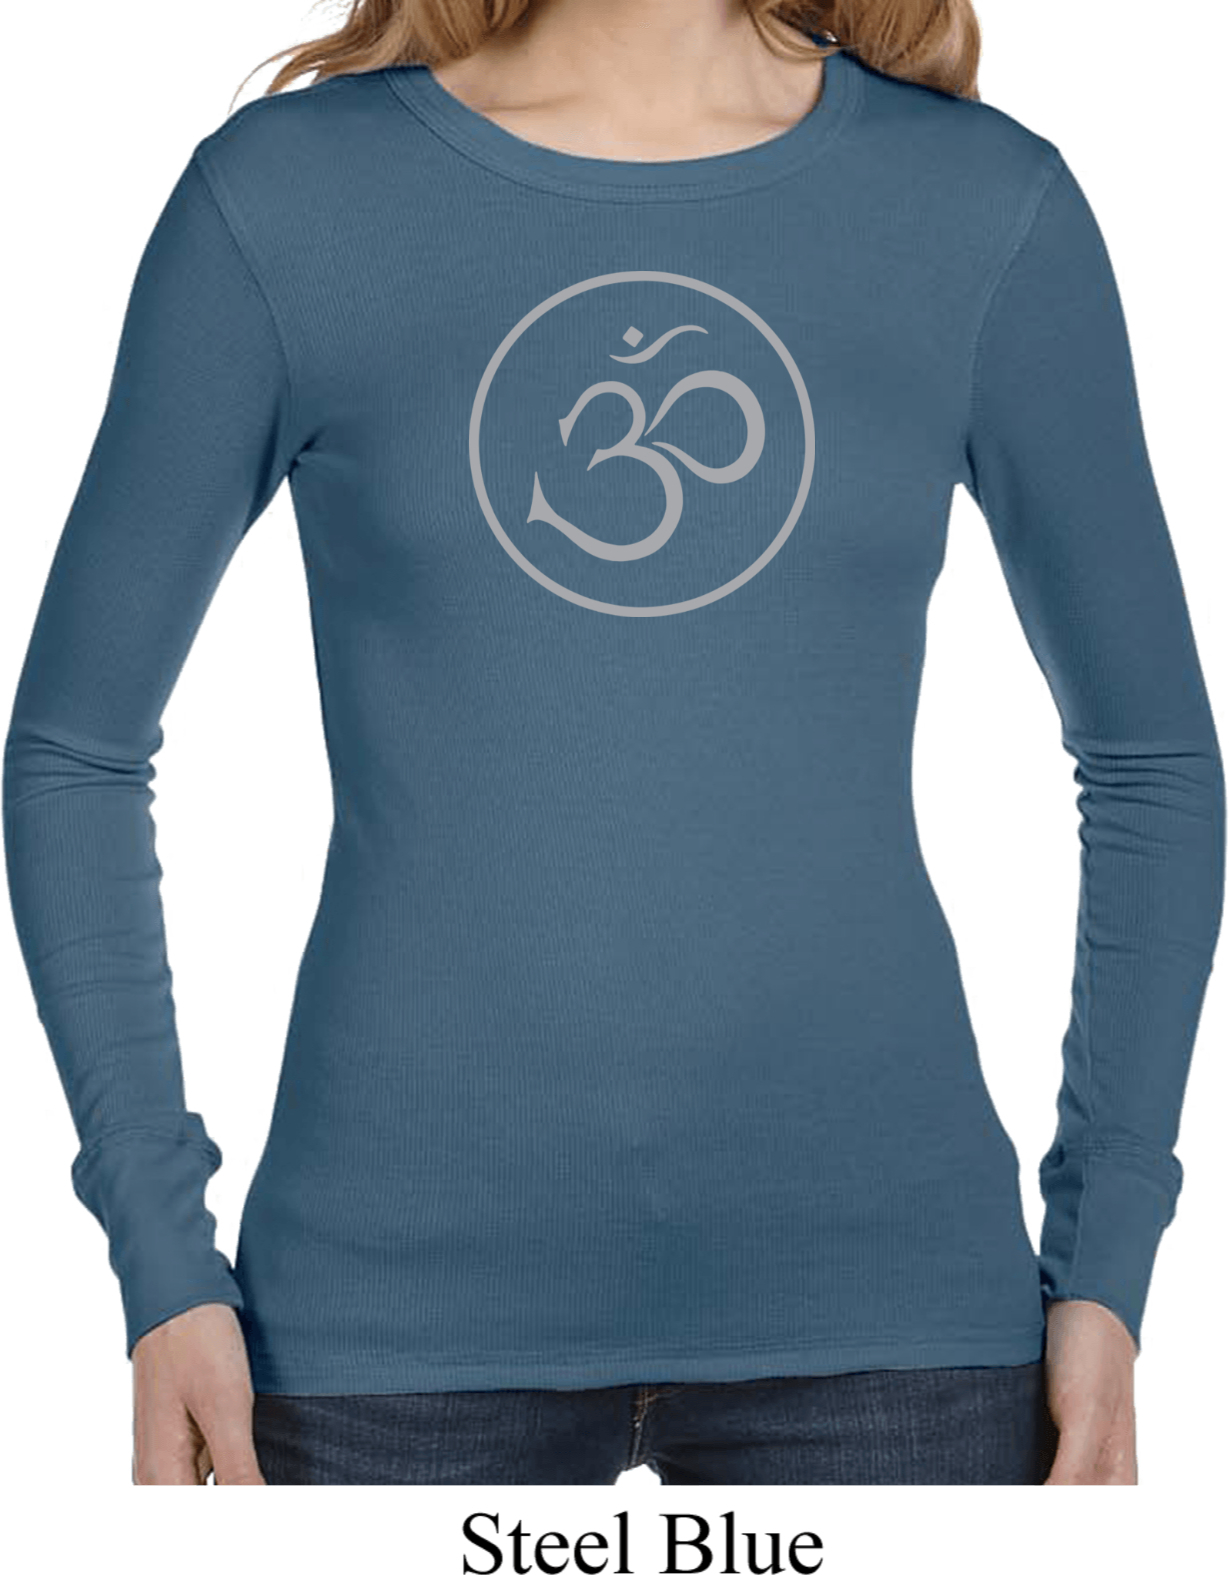 Ladies yoga shirt thin om long sleeve thermal tee t shirt for Thin long sleeve t shirts